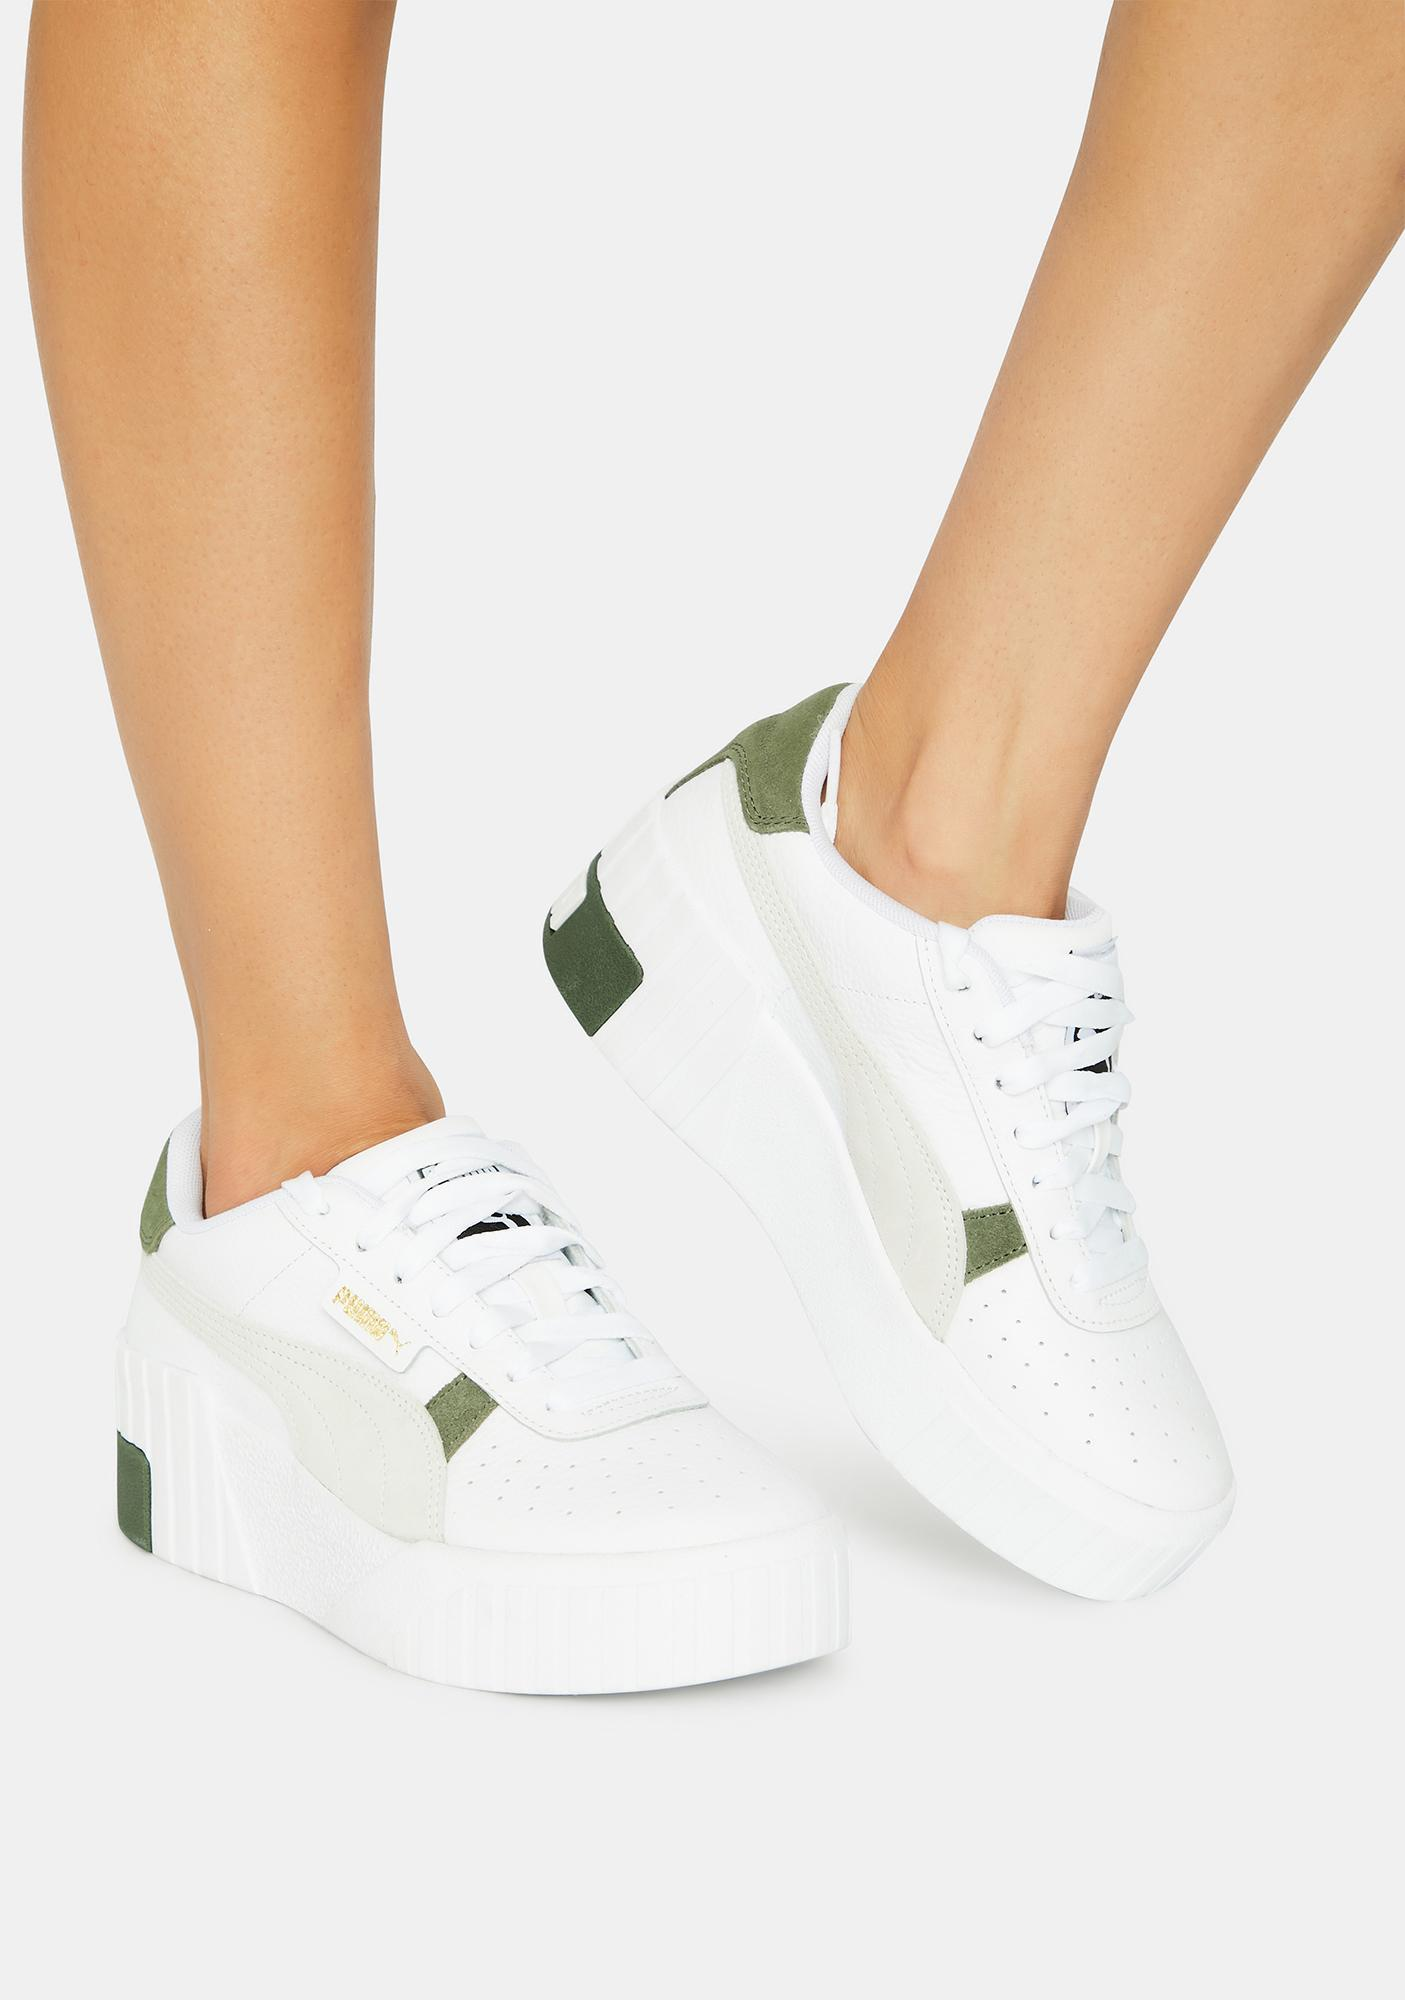 PUMA Cali Wedge Mix Sneakers